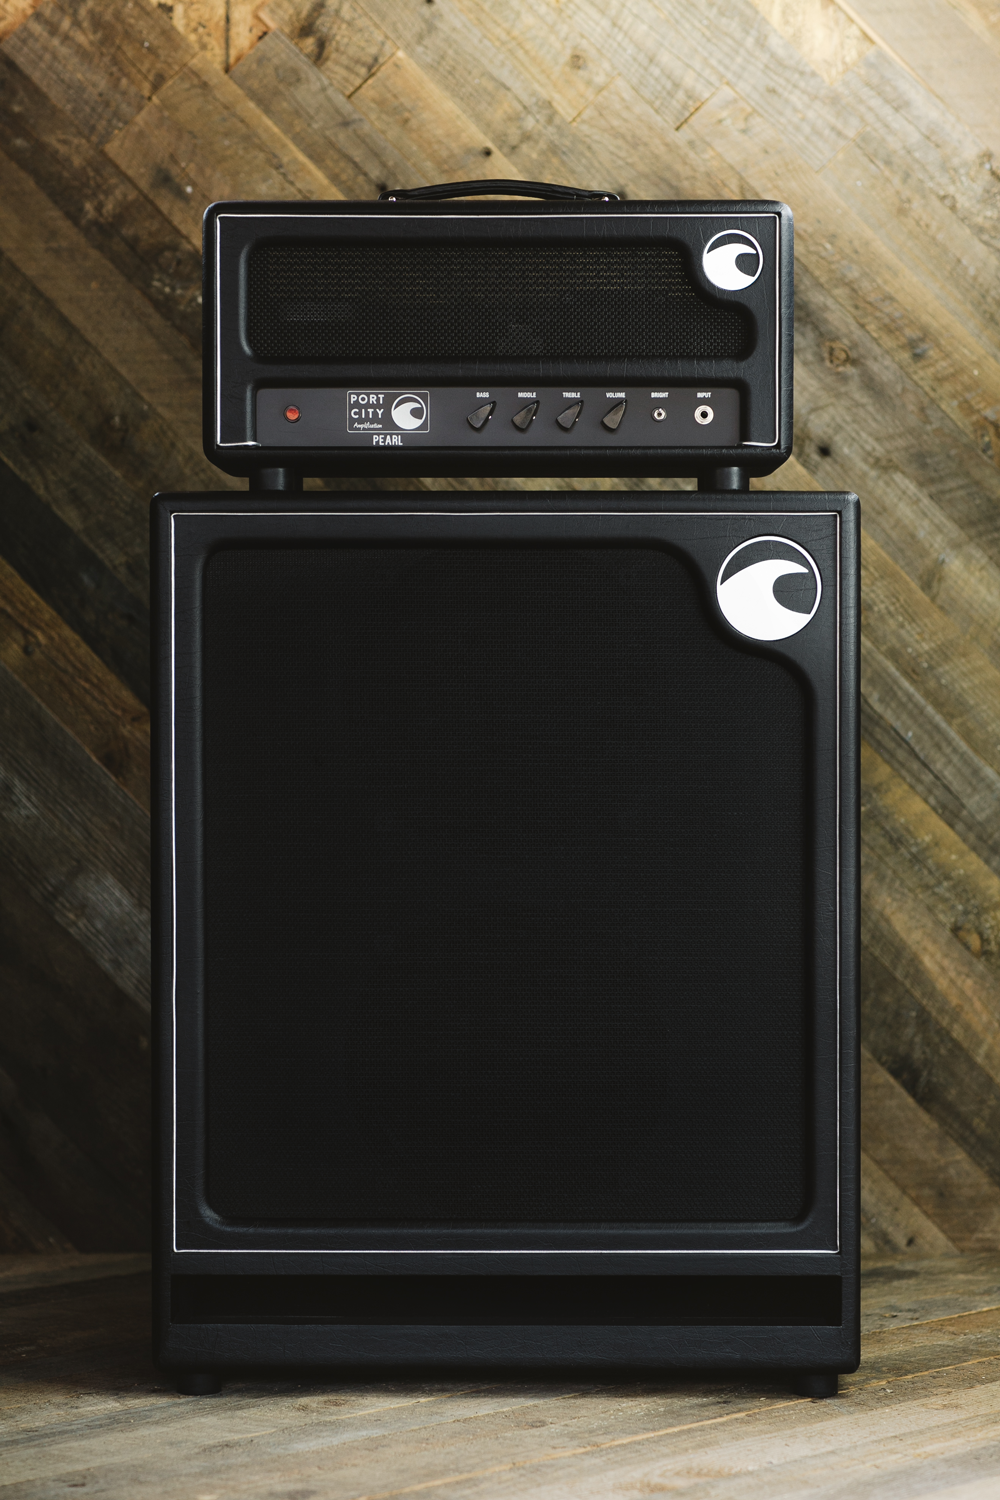 PortCity Product 54?format=500w 2x12 os vertical wave cabinet port city amplification boutique wiring diagram 2x12 speaker cab at eliteediting.co